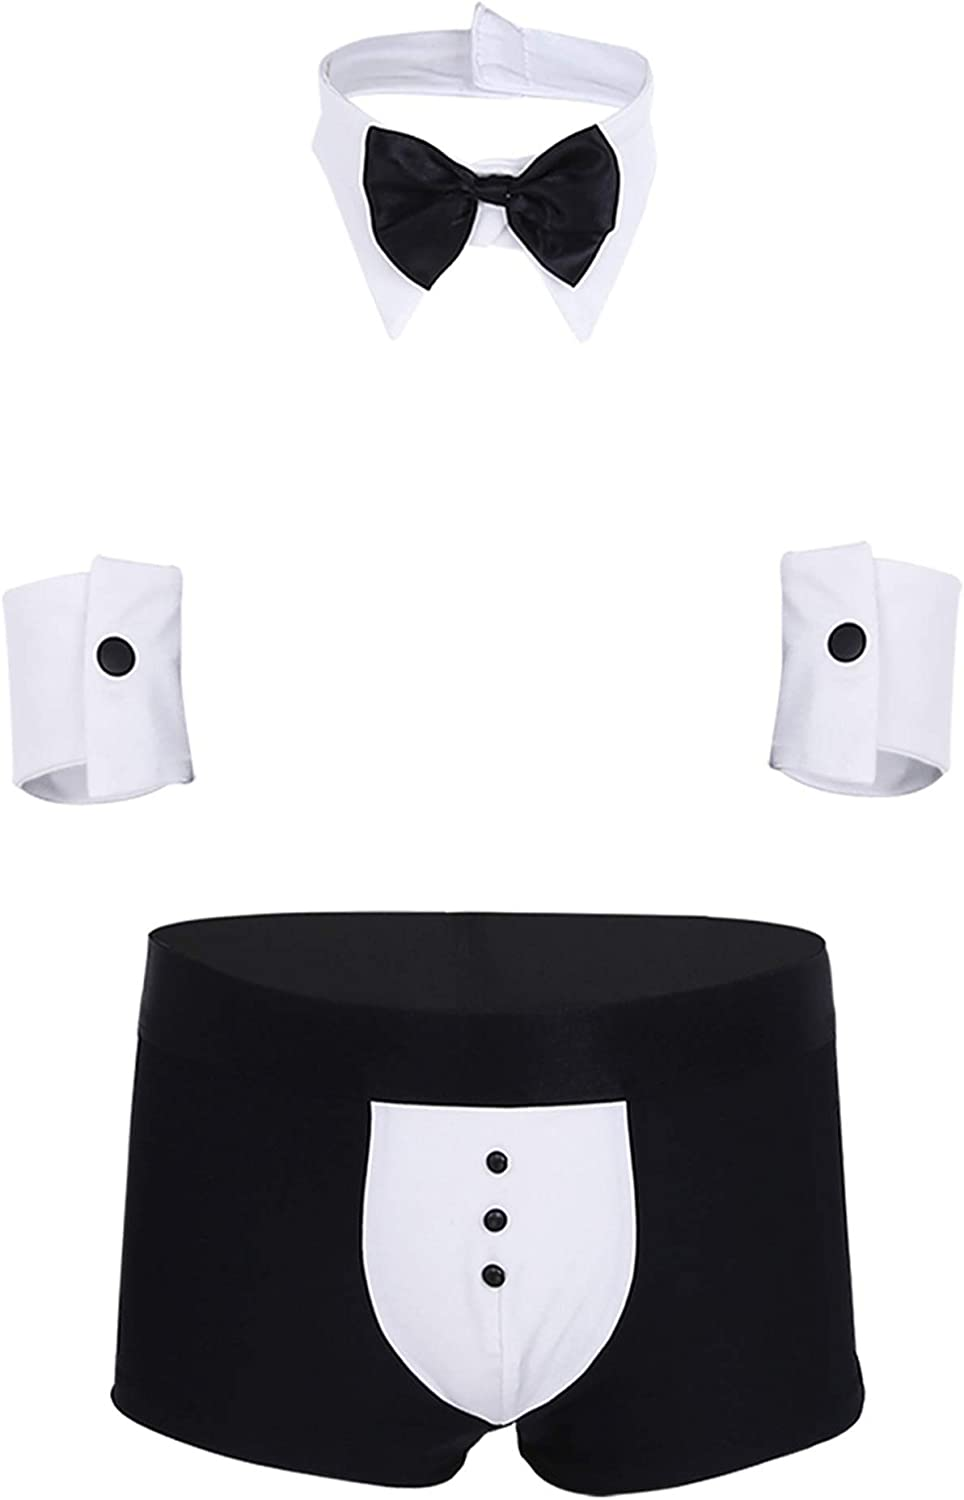 YOOJIA Mens Waiter Costume Outfits Tuxedo Collar Bow Tie G-String Thongs and Cuff Set Gentleman Nightwear